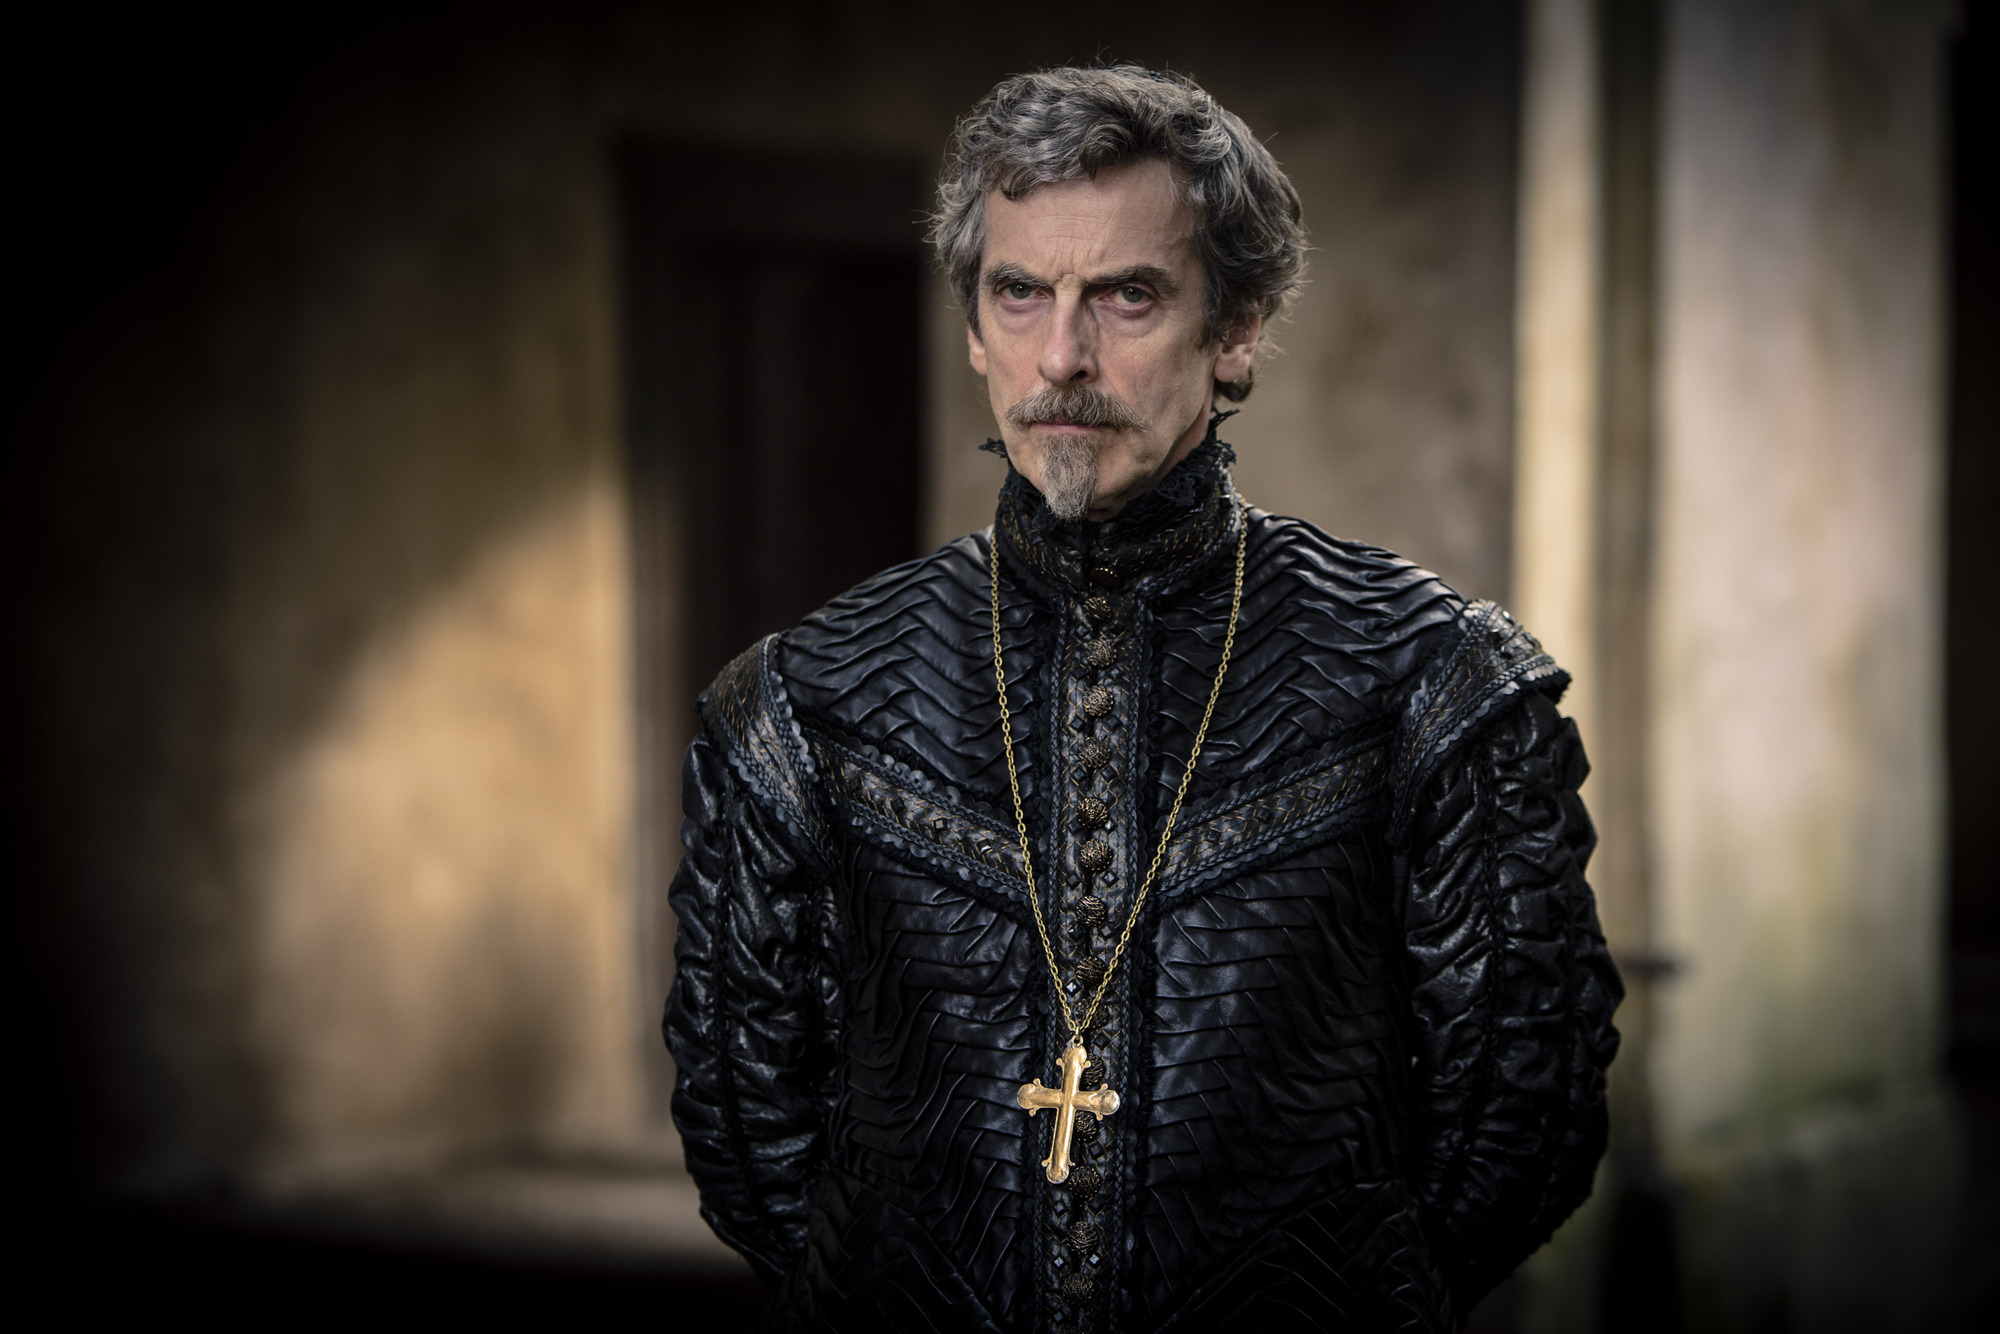 The Musketeers was exhilarating TV but there wasn't enough moustache twiddling from Peter Capaldi